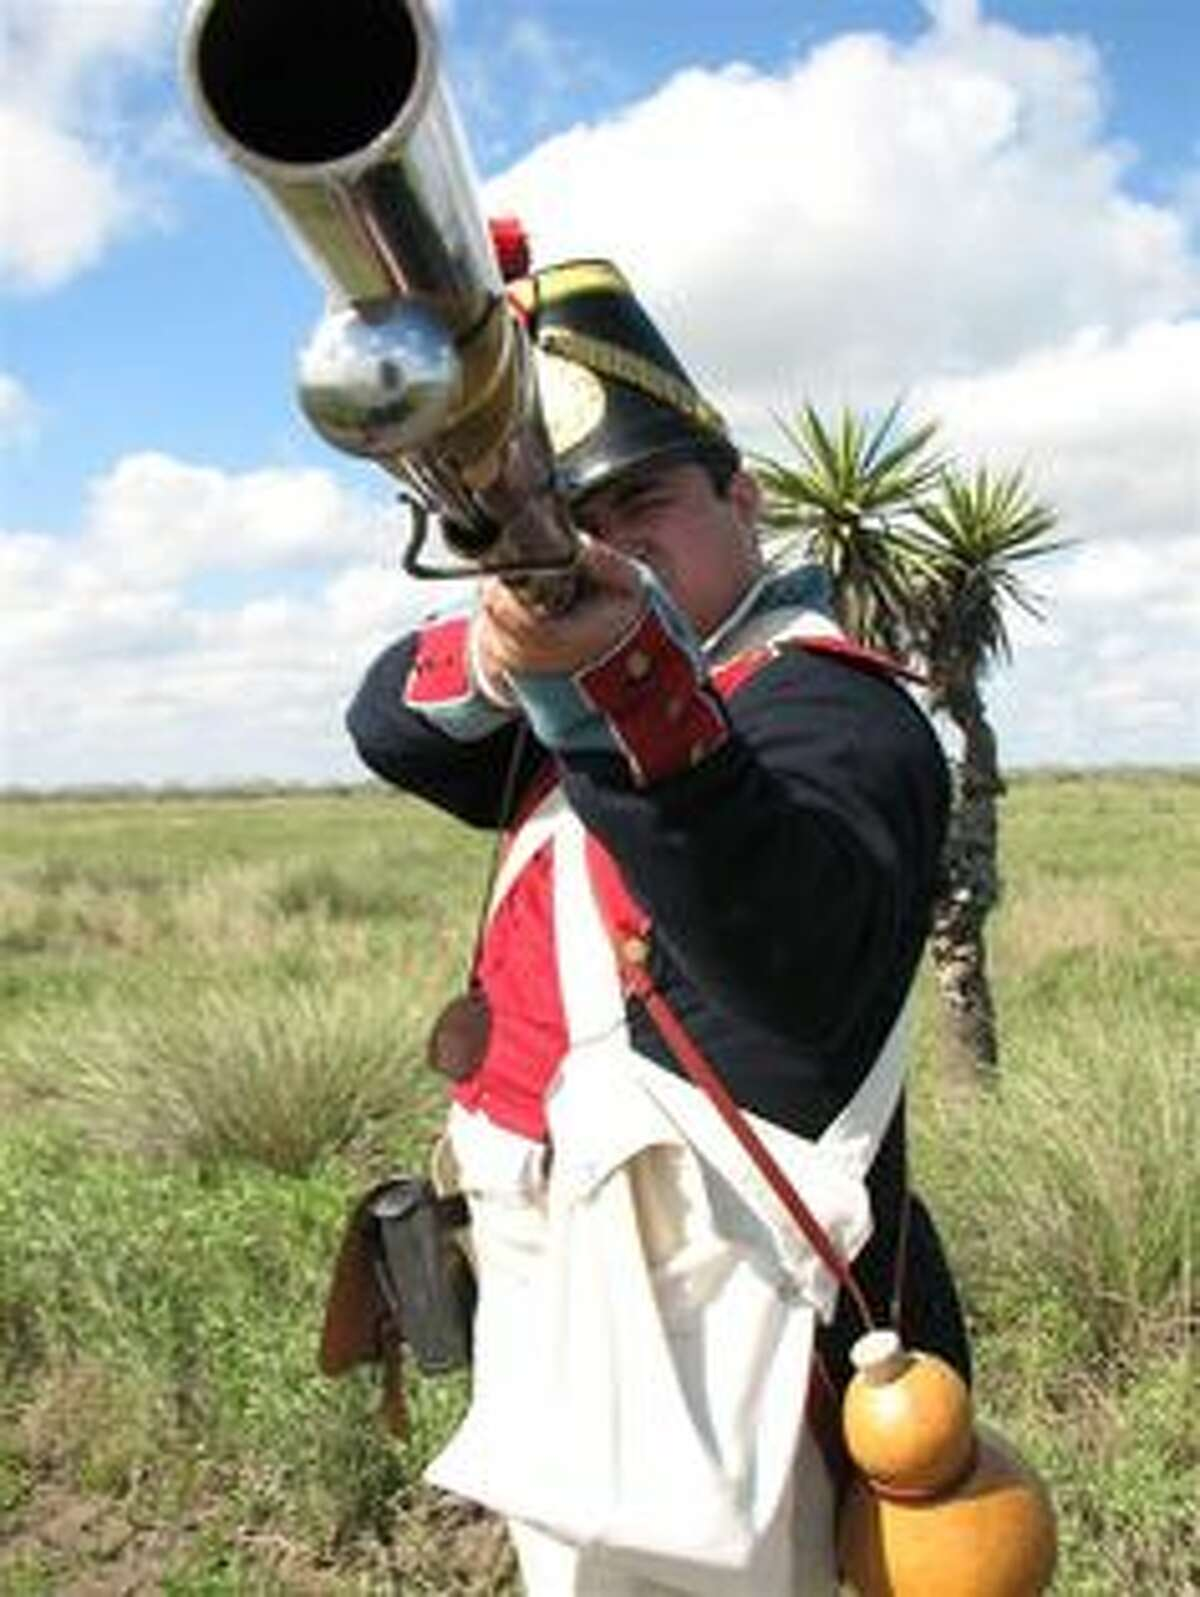 A Soldado aims a musket during a re-enactment at Palo Alto Battlefield National Historical Park in Brownsville.